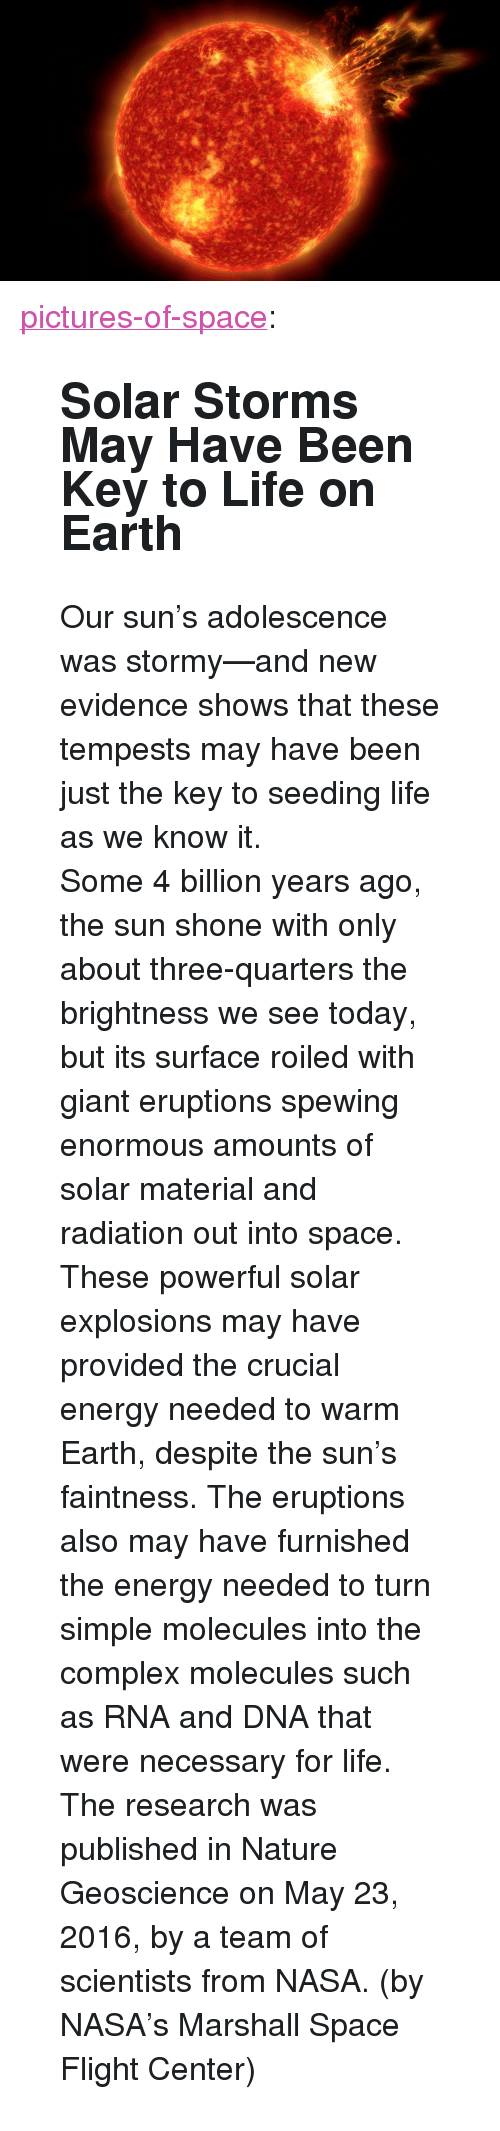 """Shone: <p><a class=""""tumblr_blog"""" href=""""http://pictures-of-space.tumblr.com/post/144815355012"""">pictures-of-space</a>:</p> <blockquote> <h2><b>  Solar Storms May Have Been Key to Life on Earth  </b></h2> <p>Our sun's adolescence was stormy—and new evidence shows that these tempests may have been just the key to seeding life as we know it.</p> <p>Some 4 billion years ago, the sun shone with only about three-quarters the brightness we see today, but its surface roiled with giant eruptions spewing enormous amounts of solar material and radiation out into space. These powerful solar explosions may have provided the crucial energy needed to warm Earth, despite the sun's faintness. The eruptions also may have furnished the energy needed to turn simple molecules into the complex molecules such as RNA and DNA that were necessary for life. The research was published in Nature Geoscience on May 23, 2016, by a team of scientists from NASA. (by  NASA's Marshall Space Flight Center)</p> </blockquote>"""